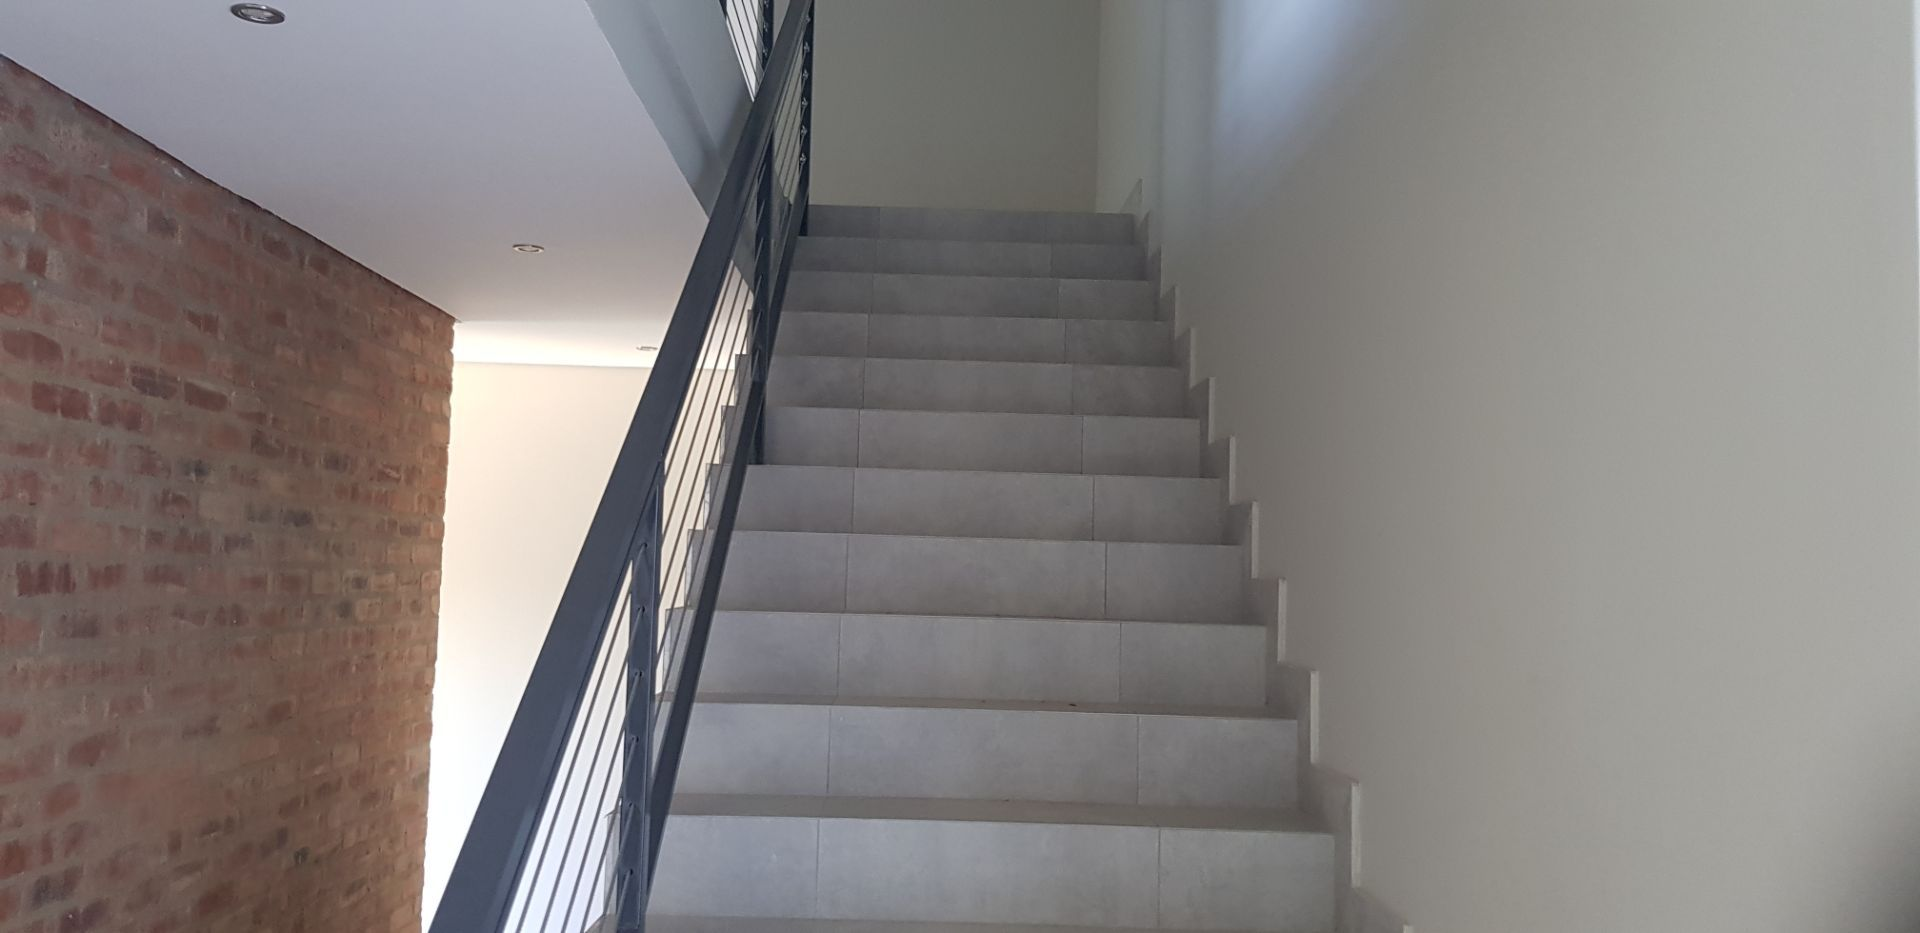 House in Lifestyle Estate - 20190712_111453.jpg